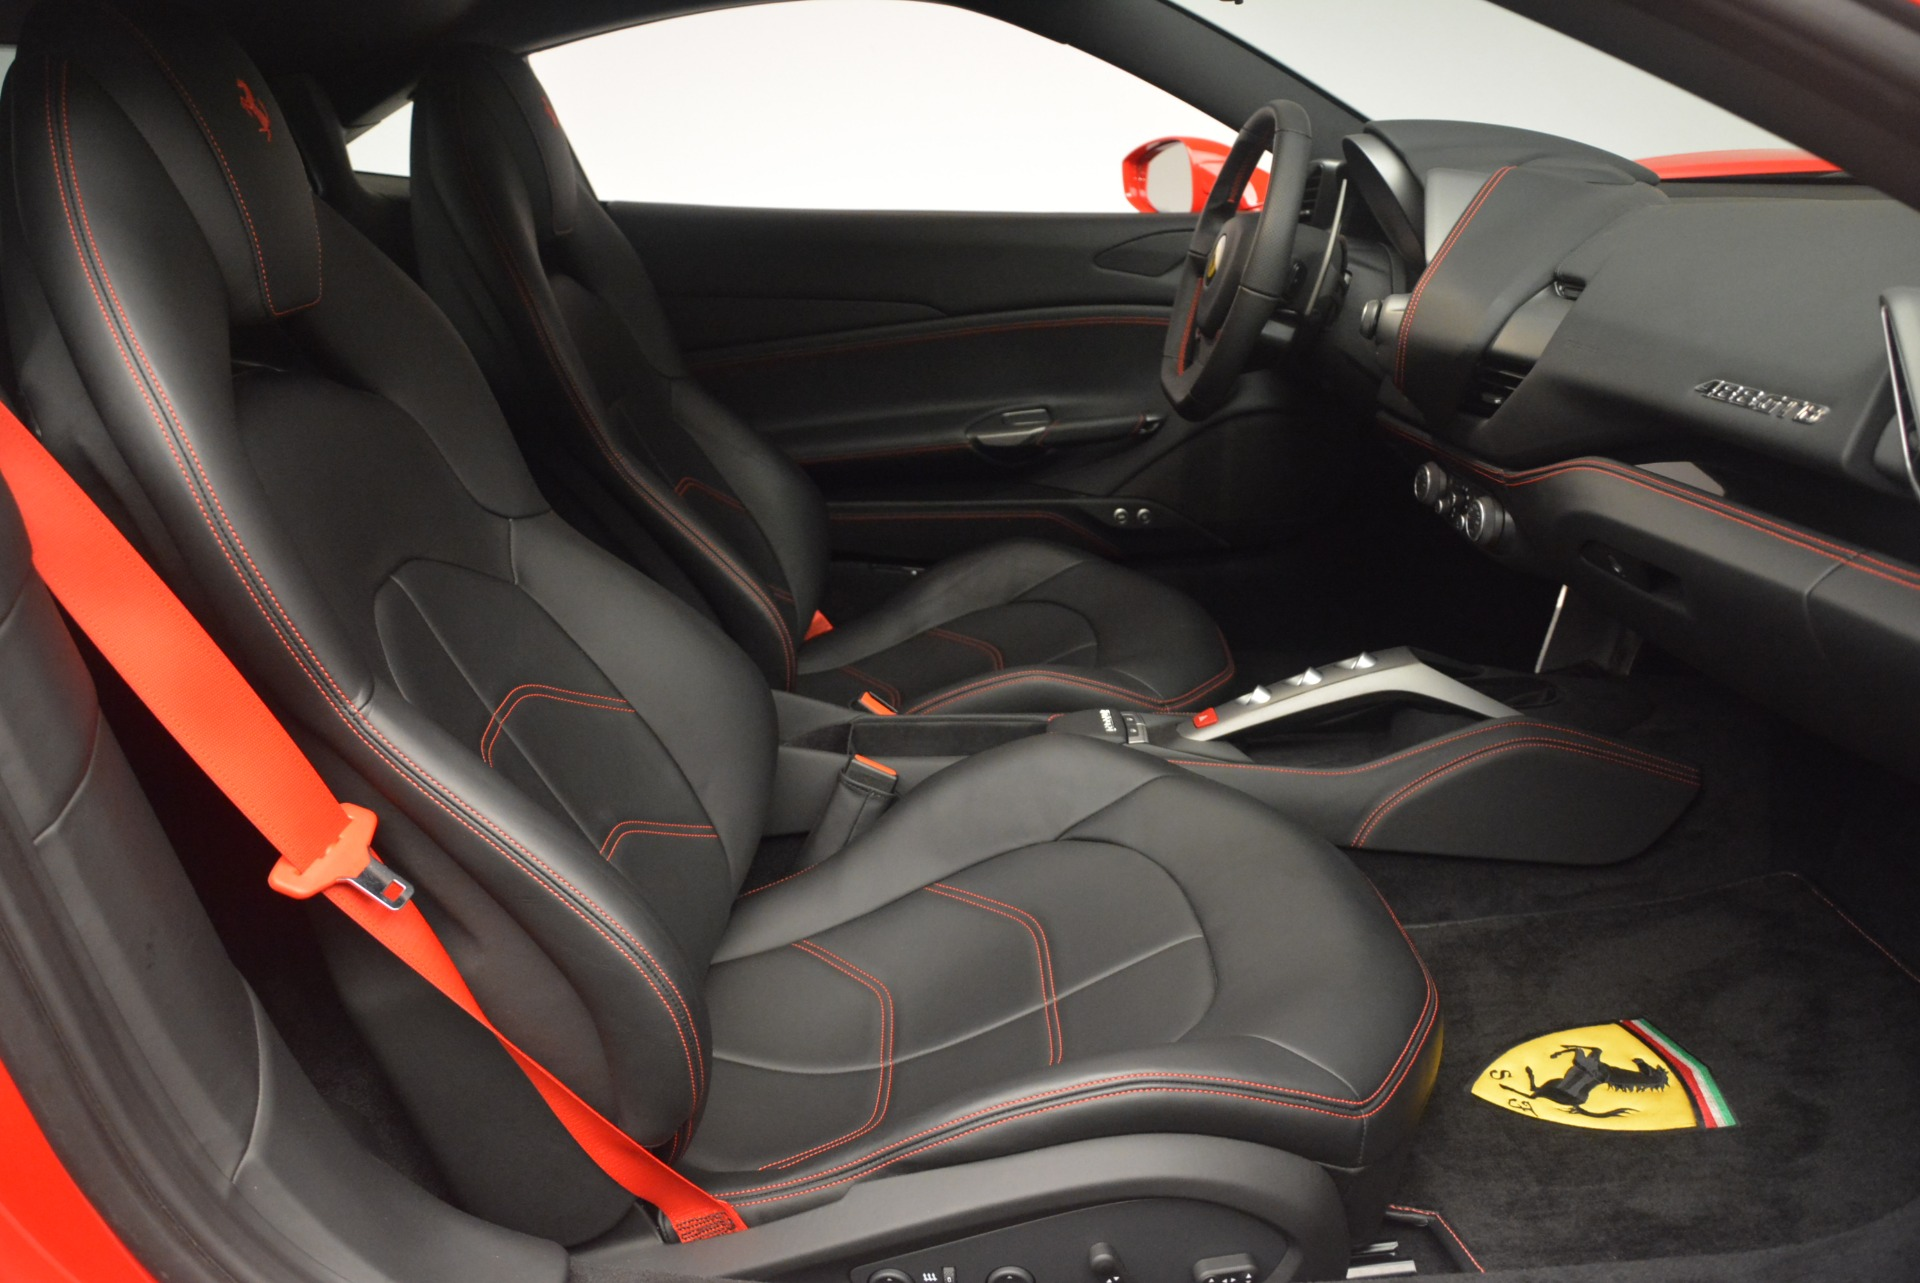 Used 2017 Ferrari 488 GTB  For Sale In Greenwich, CT. Alfa Romeo of Greenwich, 4488 2365_p18